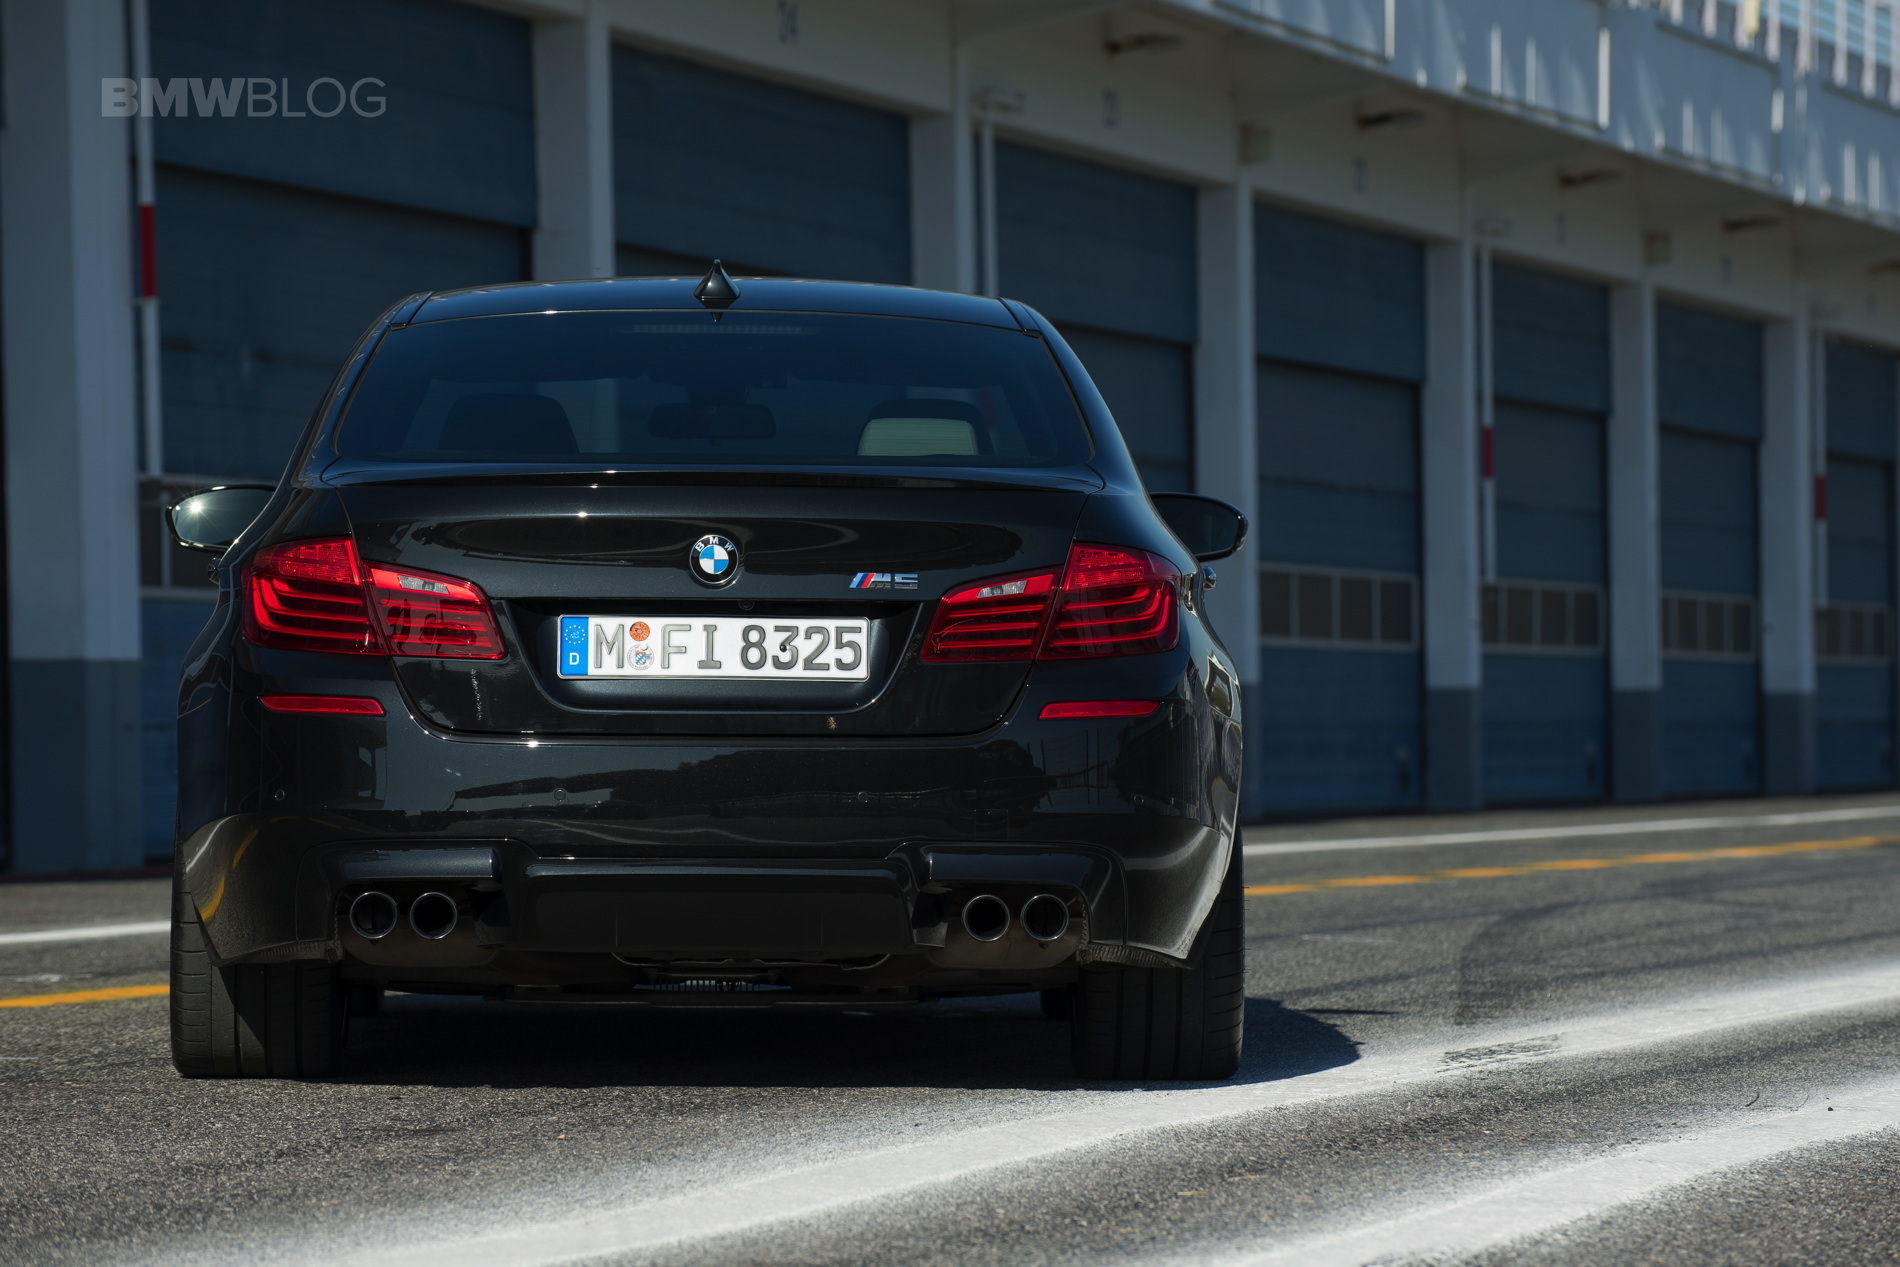 BMW F10 M5 photos 03